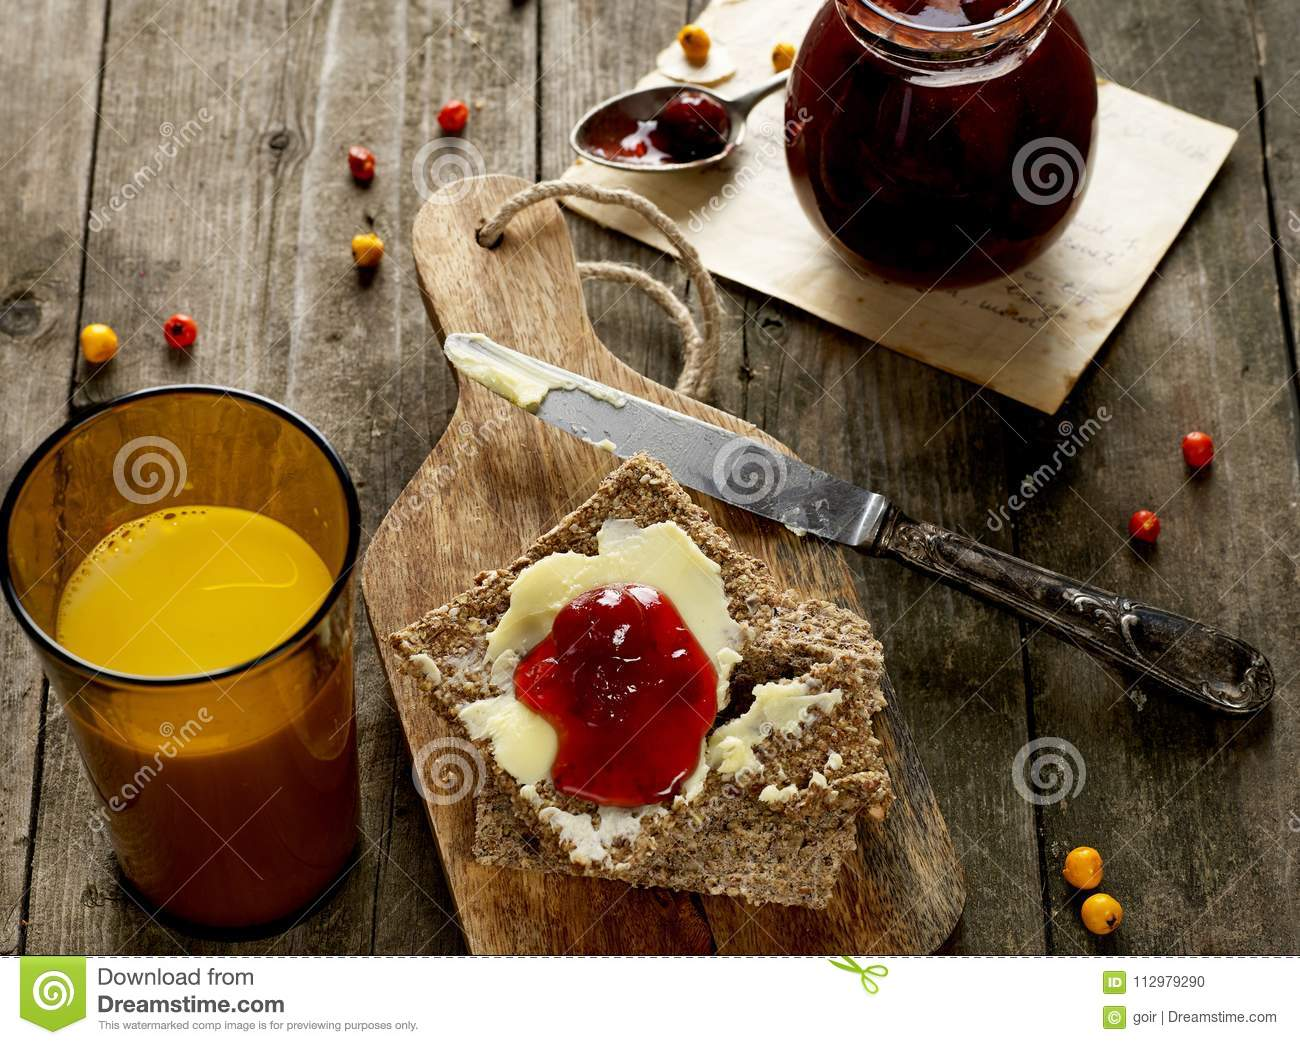 Milk, bread and jam